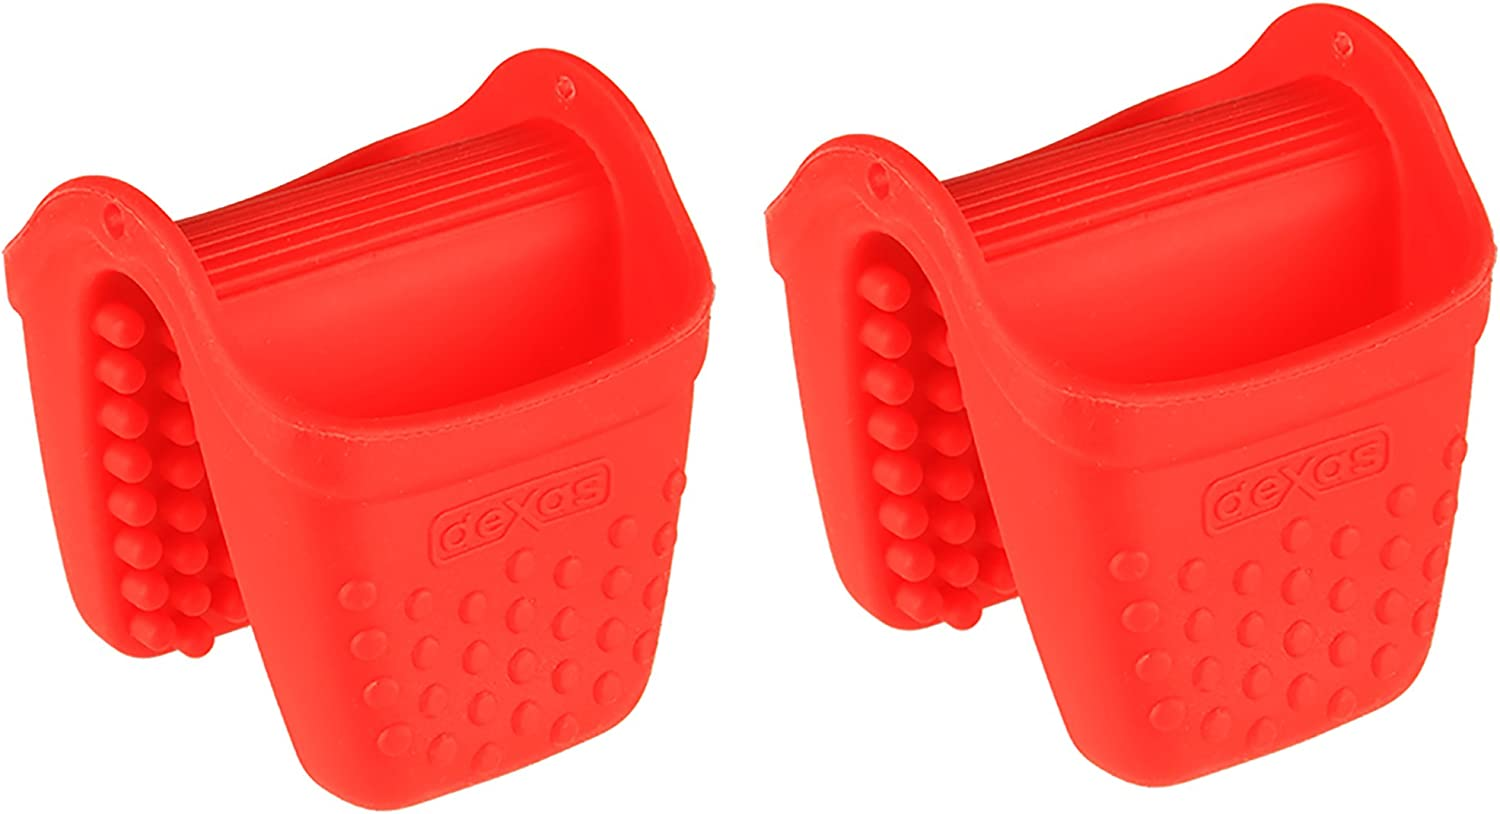 Dexas Micromitt Silicone Oven Mitt, Set of Two, Red